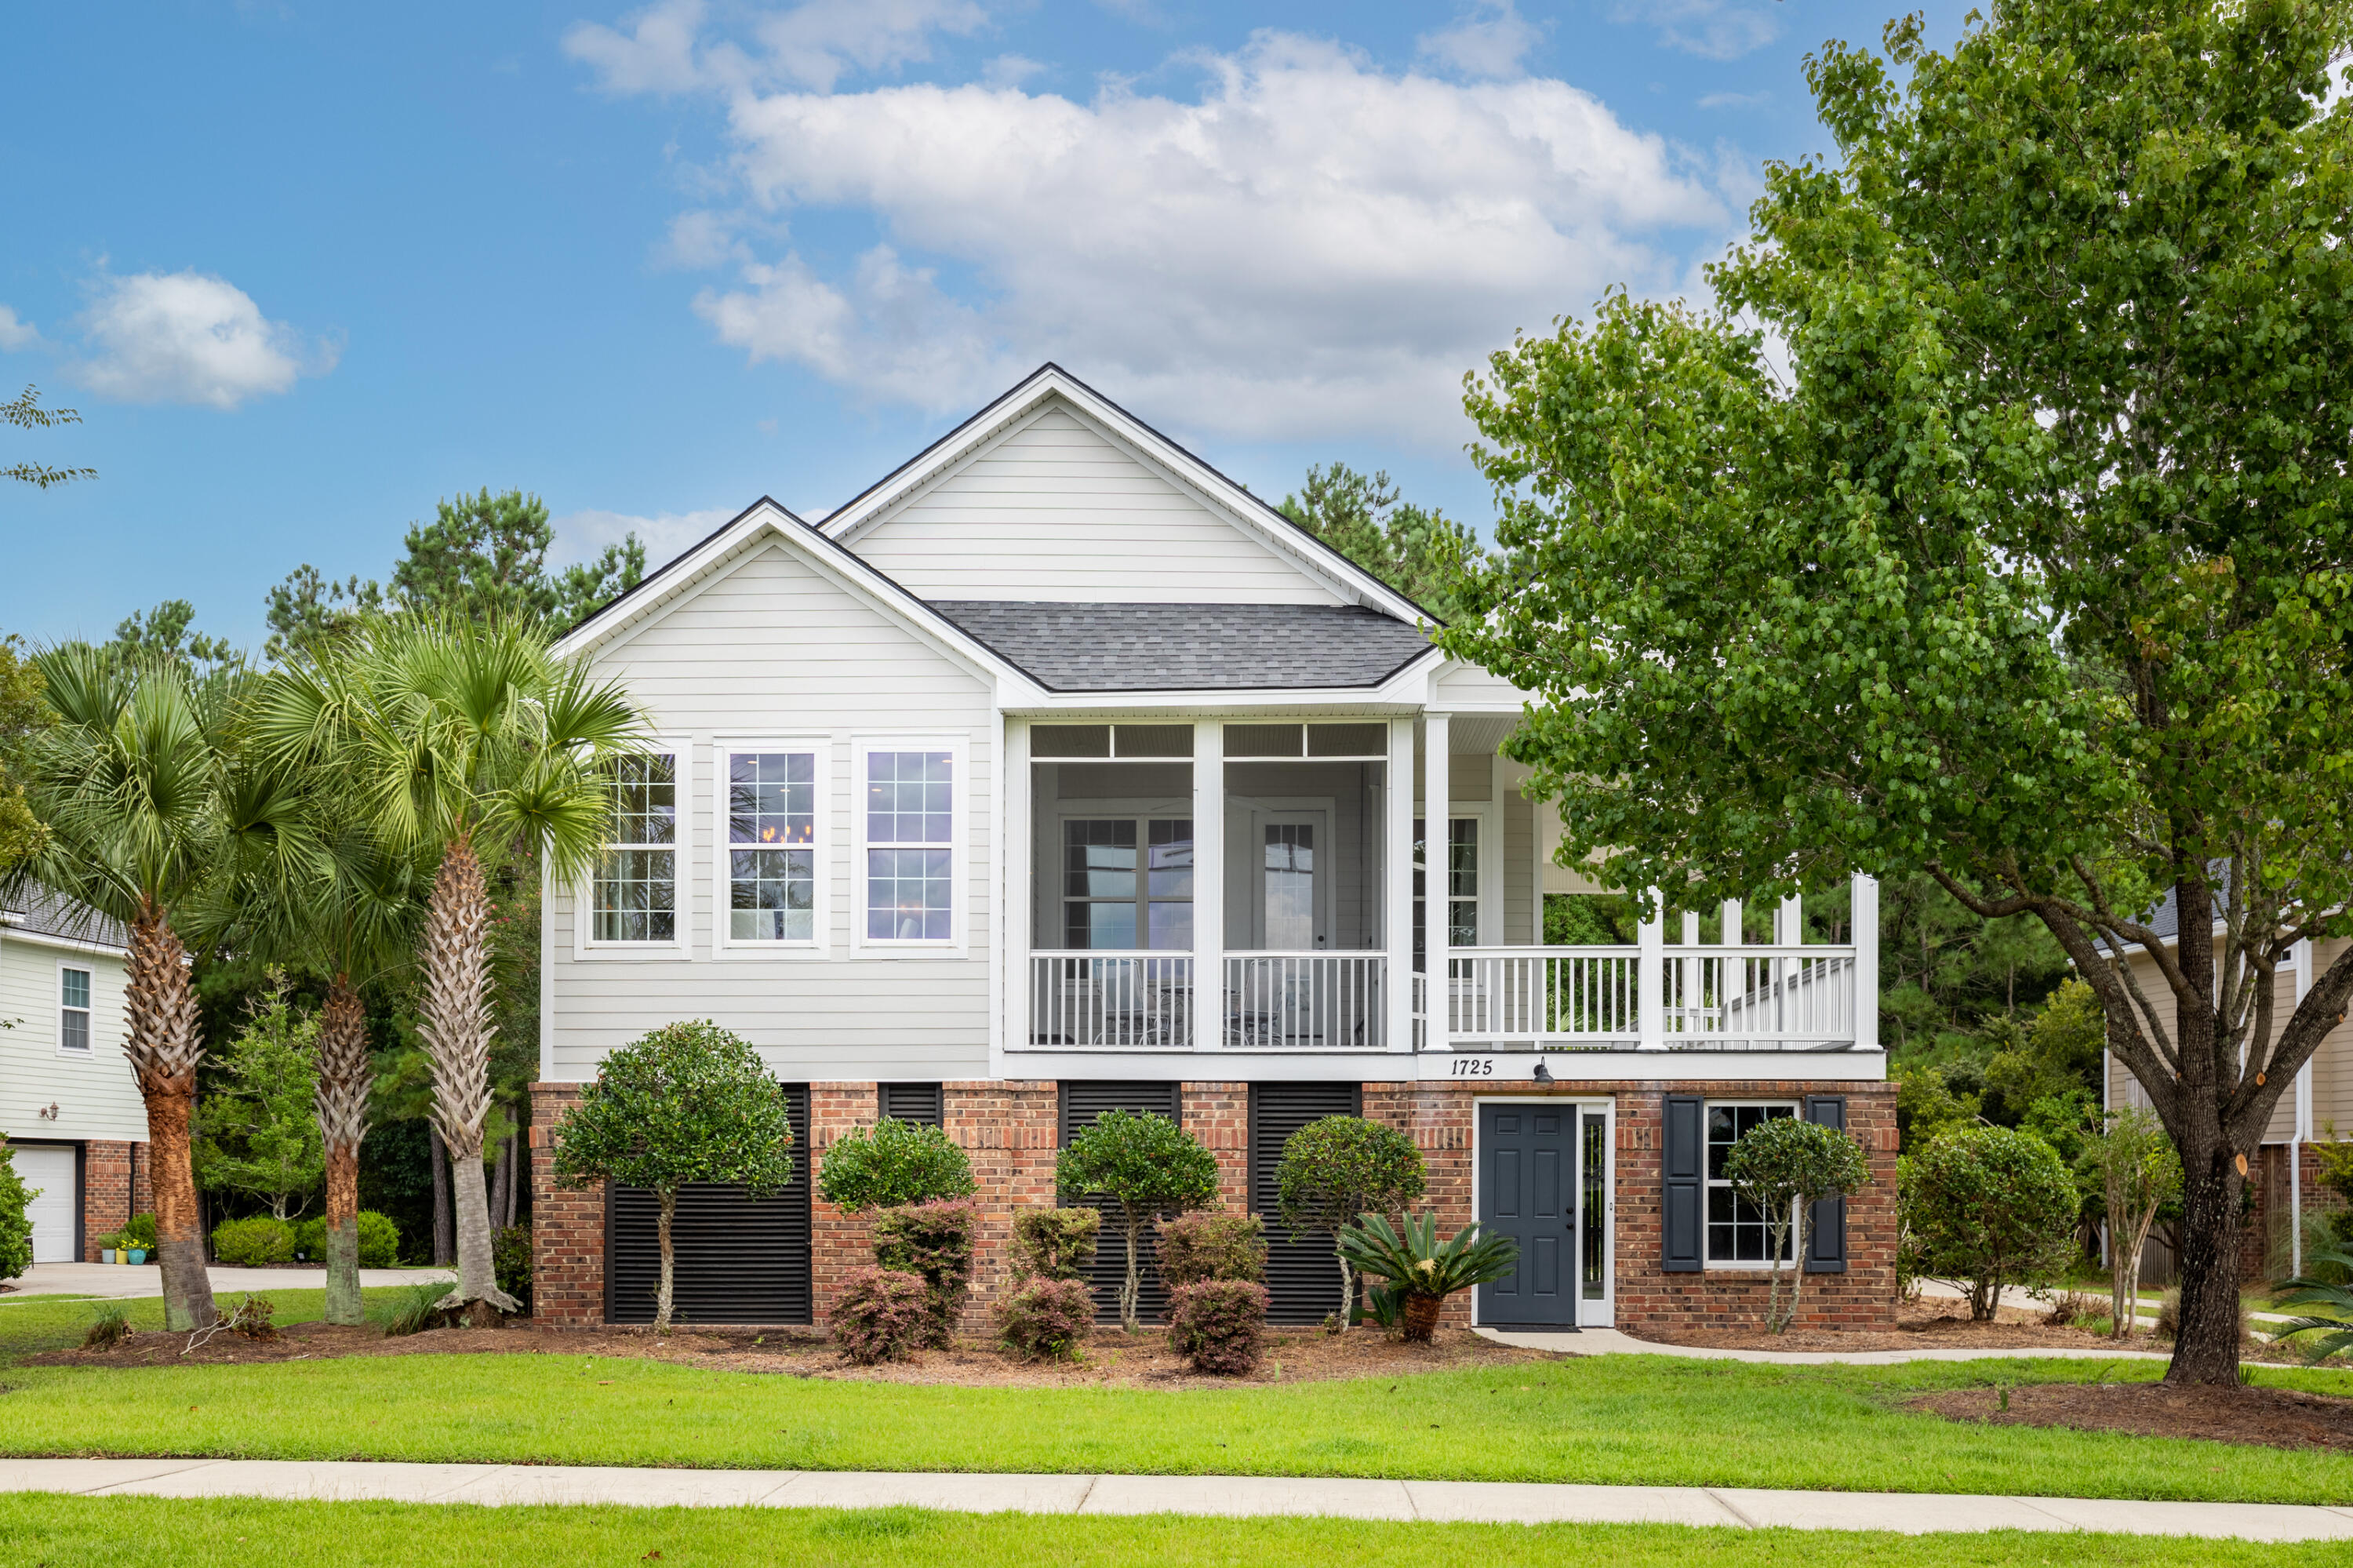 Rivertowne Country Club Homes For Sale - 1725 Rivertowne Country Club, Mount Pleasant, SC - 51